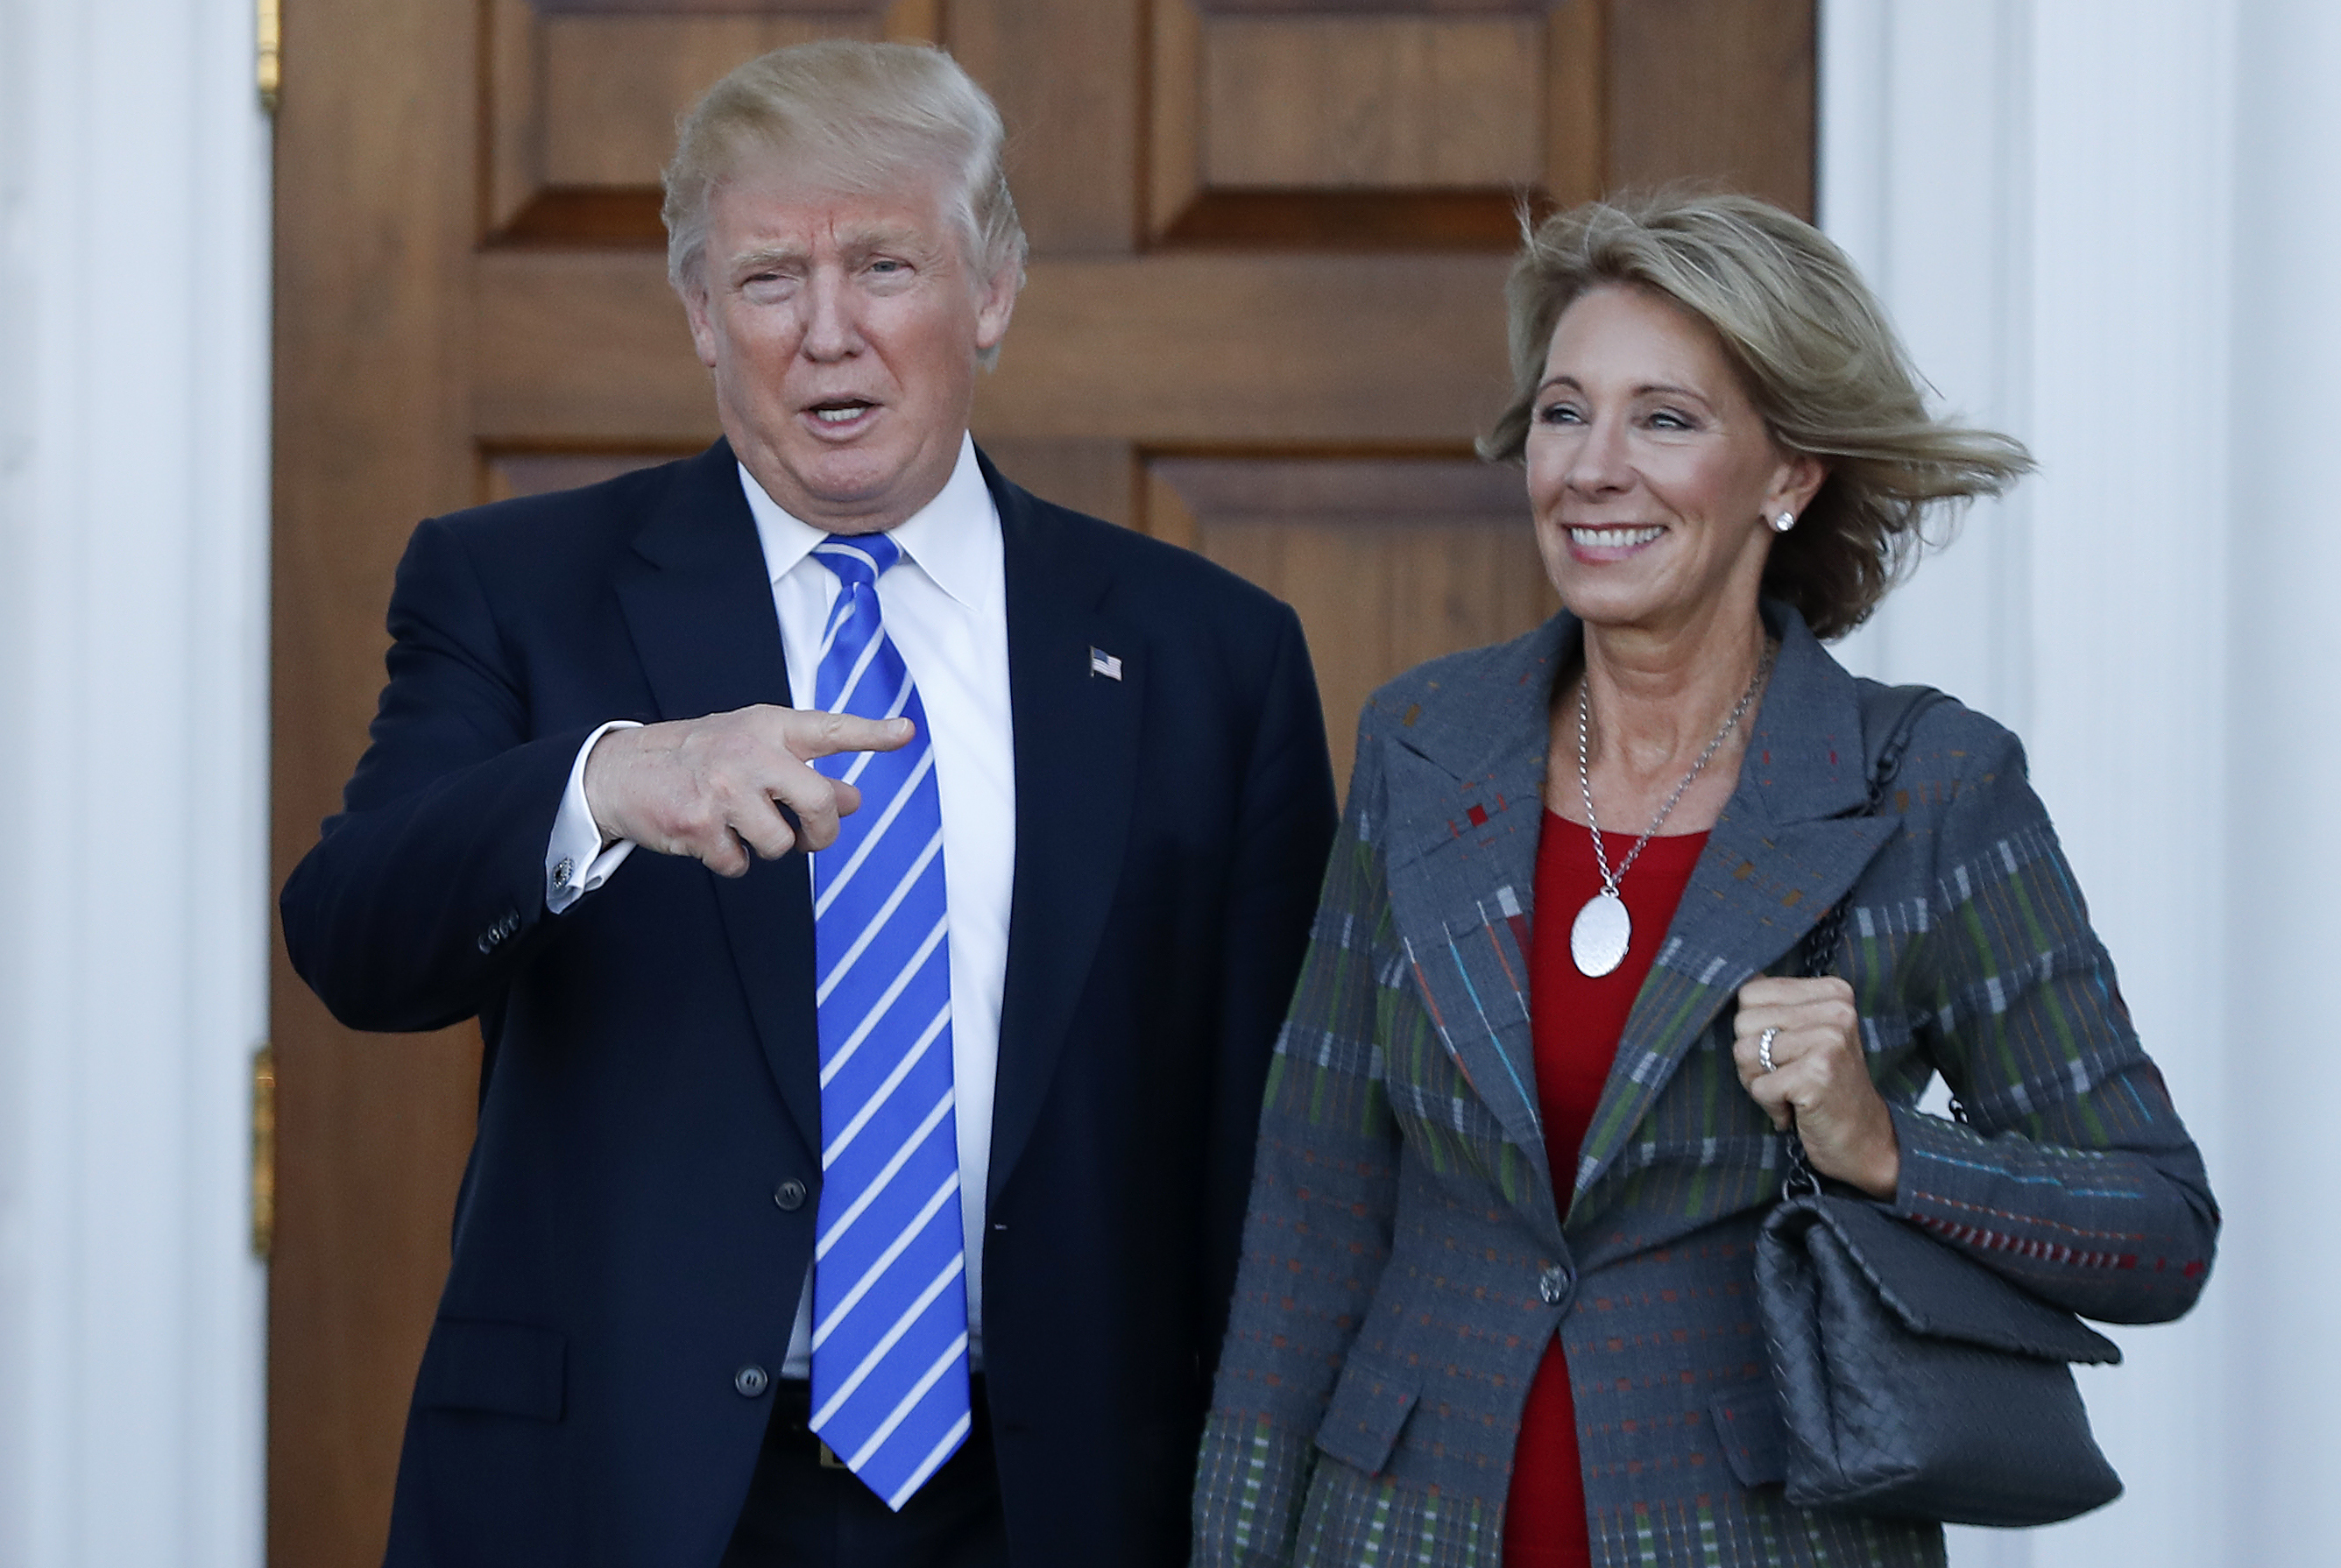 Photo: Donald Trump, Betsy DeVos (AP Photo)